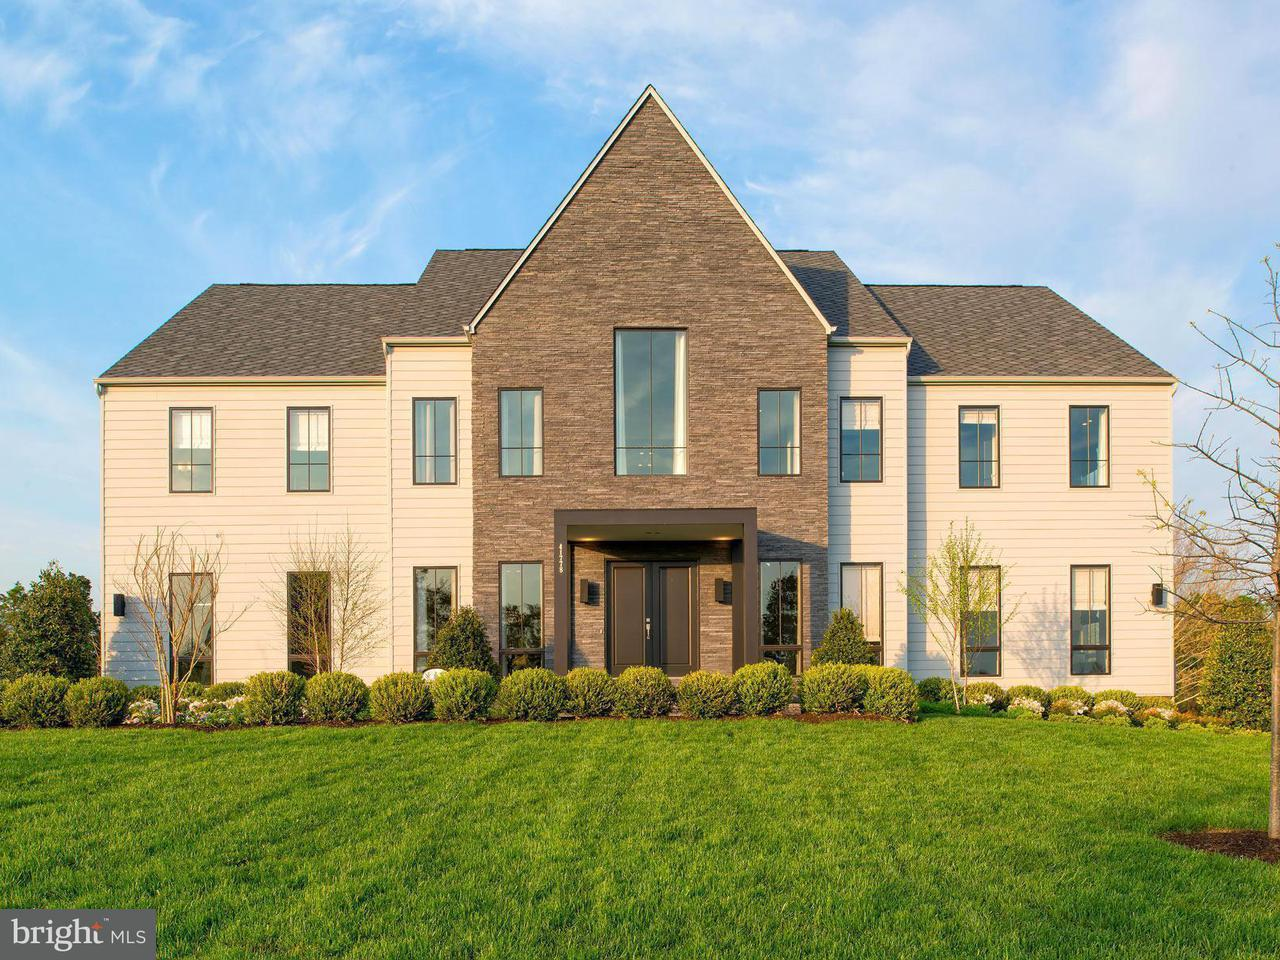 Vivienda unifamiliar por un Venta en ABBEY KNOLL Court ABBEY KNOLL Court Ashburn, Virginia 20148 Estados Unidos